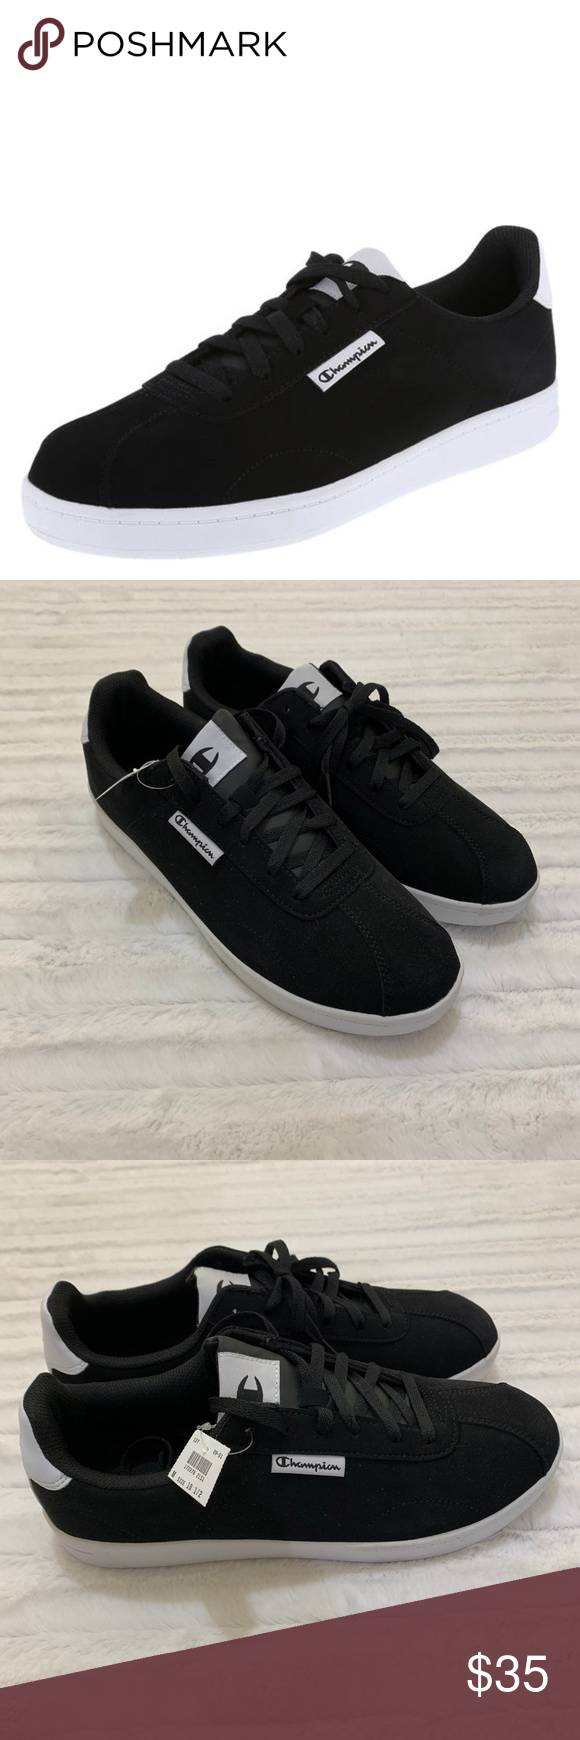 07e969b08be69 Champion Rally Court Mens Black Sneaker Shoes Brand new with tags and in  box! Champion